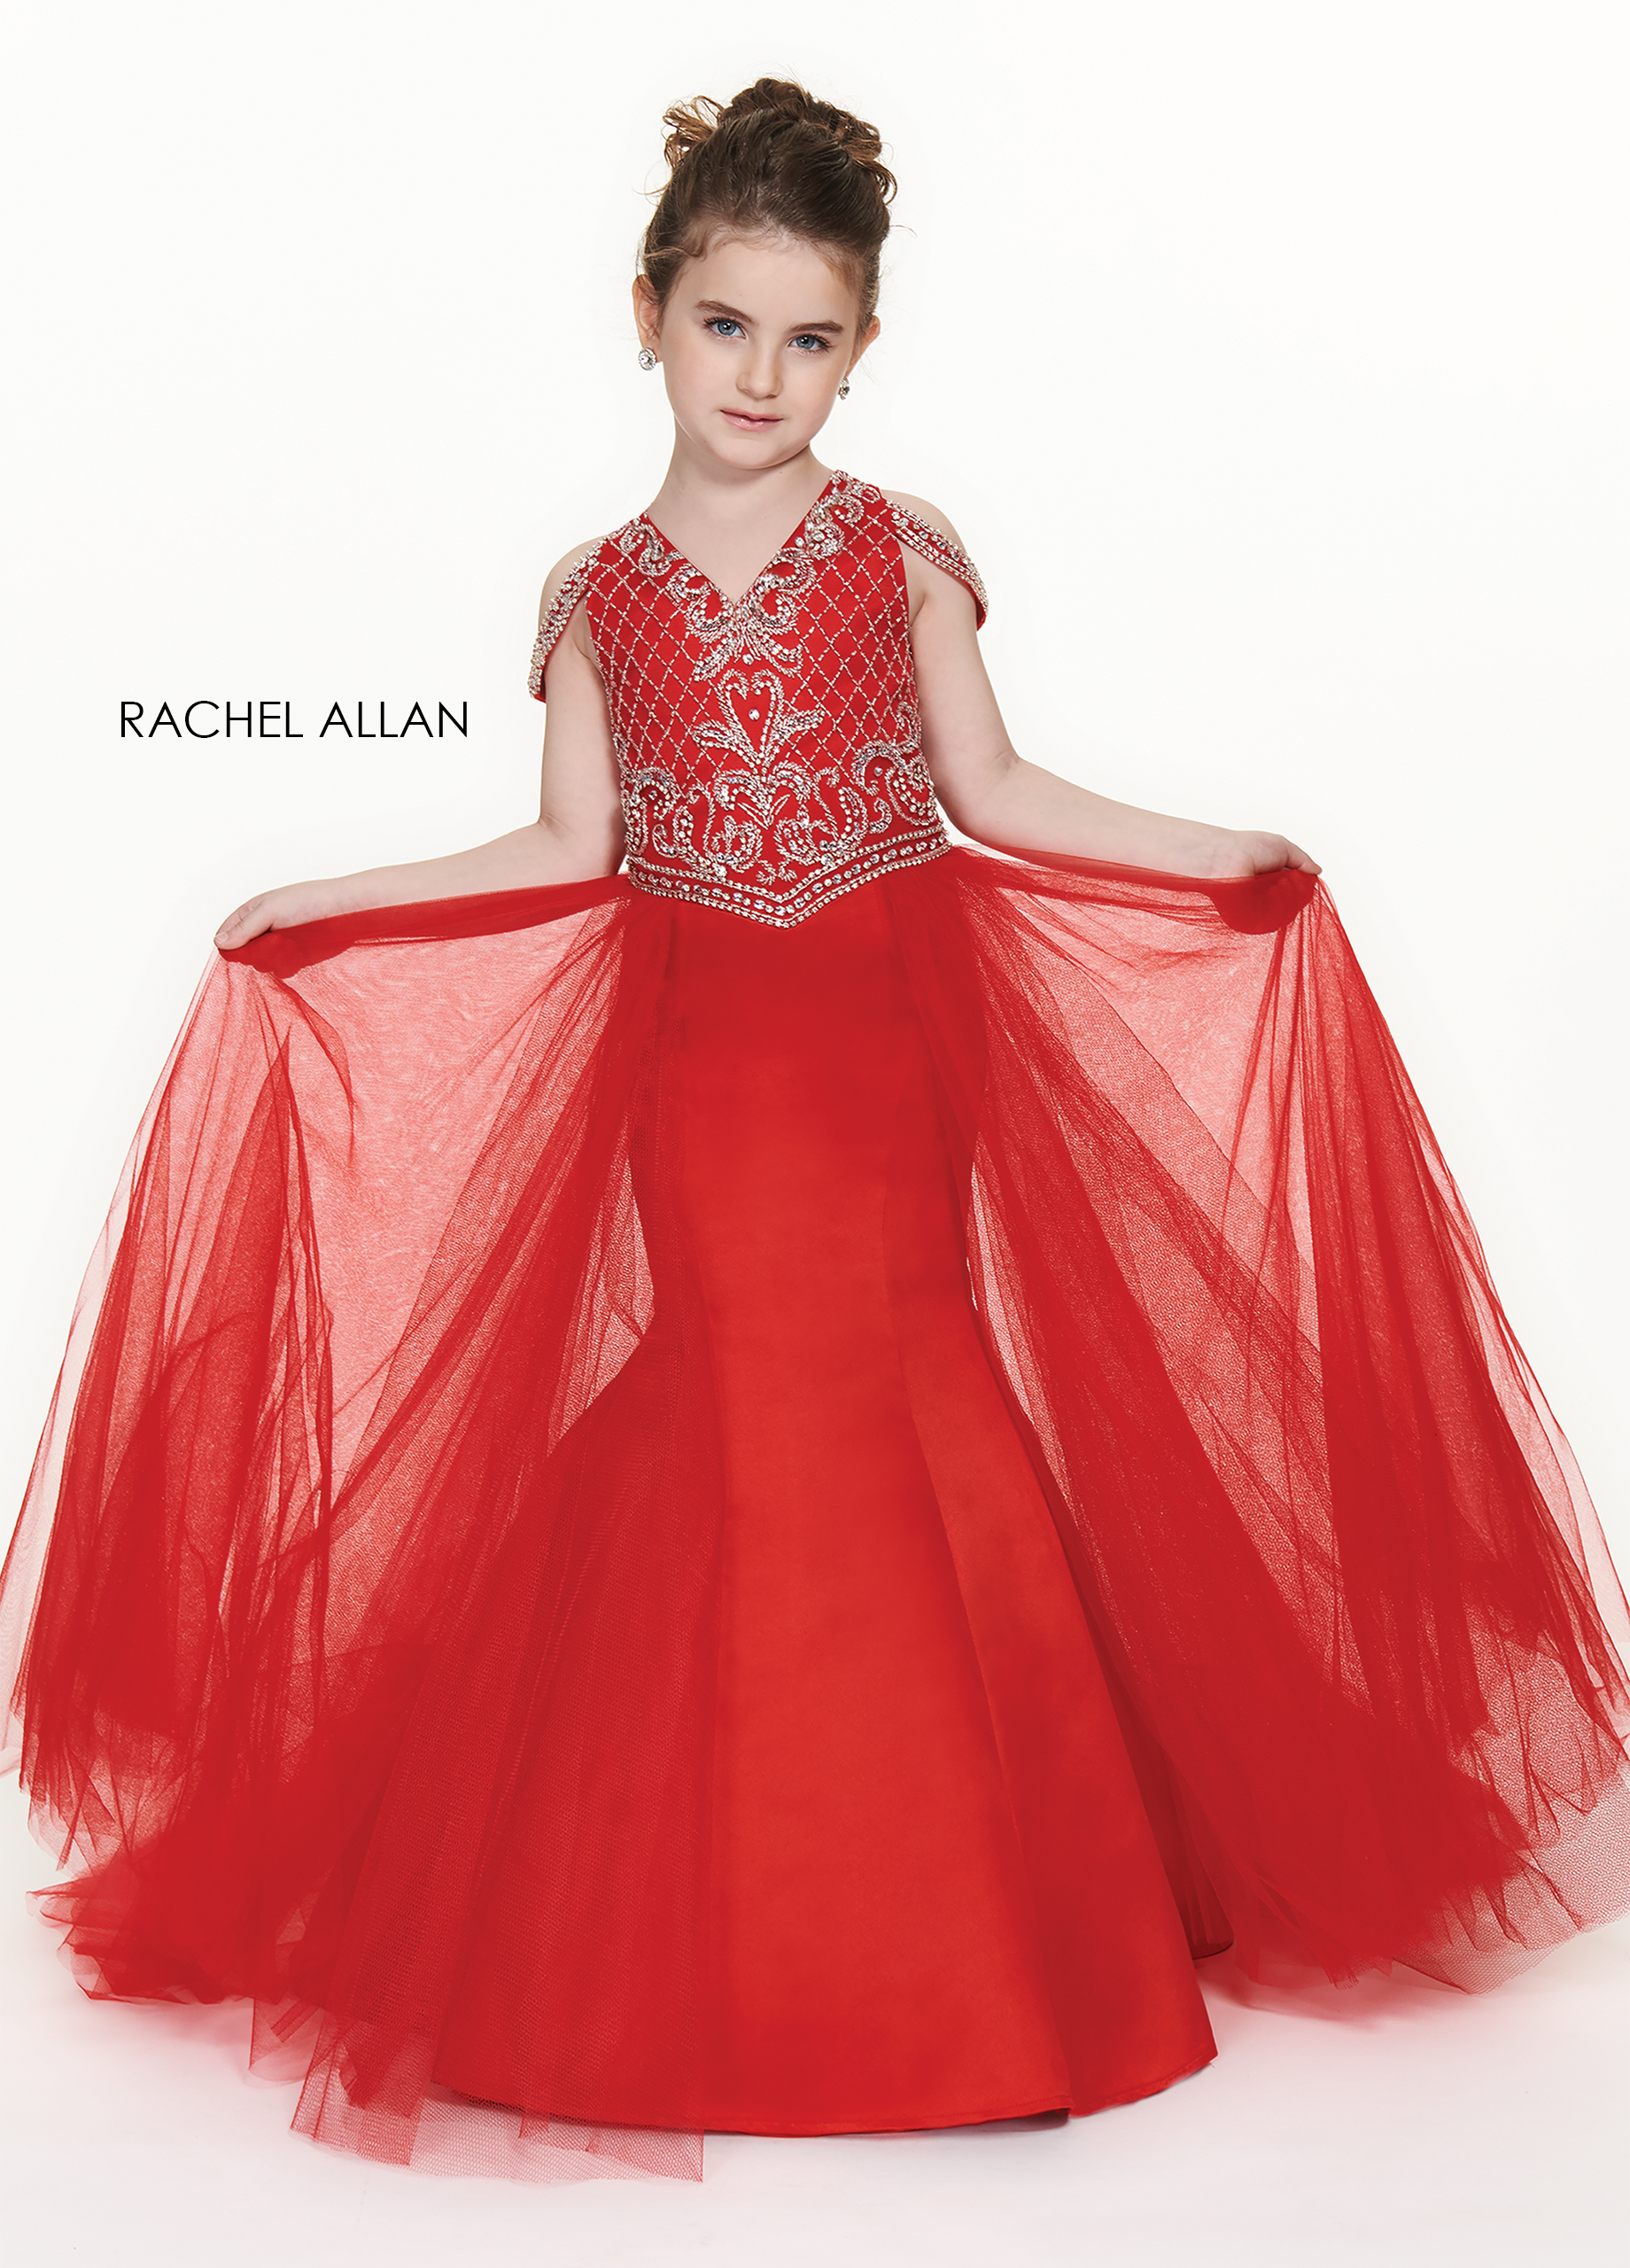 V-Neck Mermaid Little Girl Pageant Dresses in Red Color